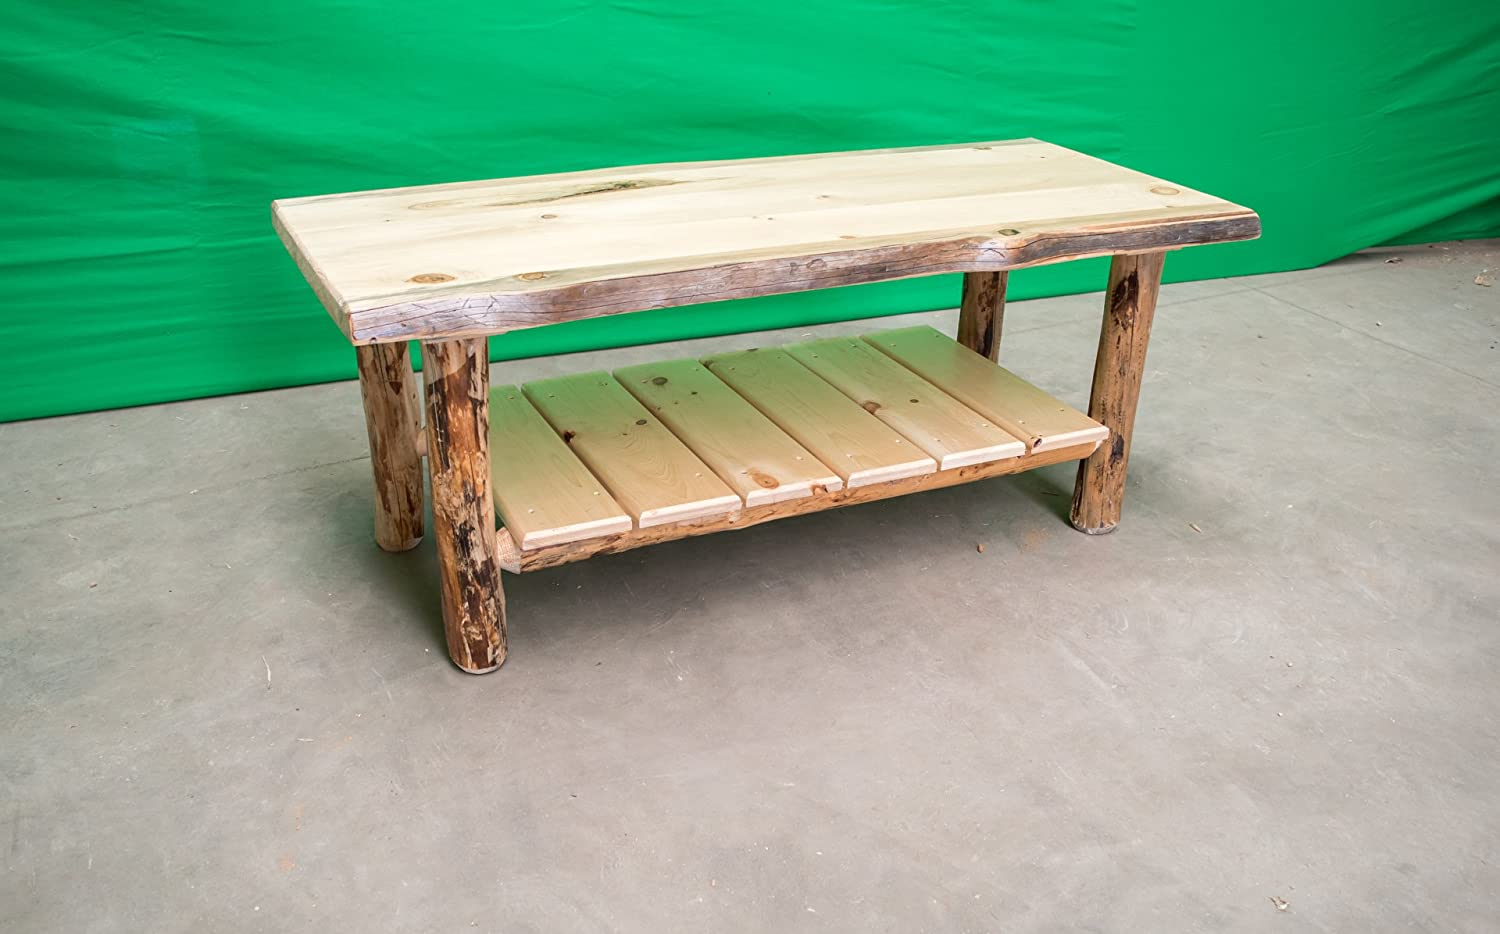 - Amazon.com: Midwest Log Furniture - Rustic Log Coffee Table